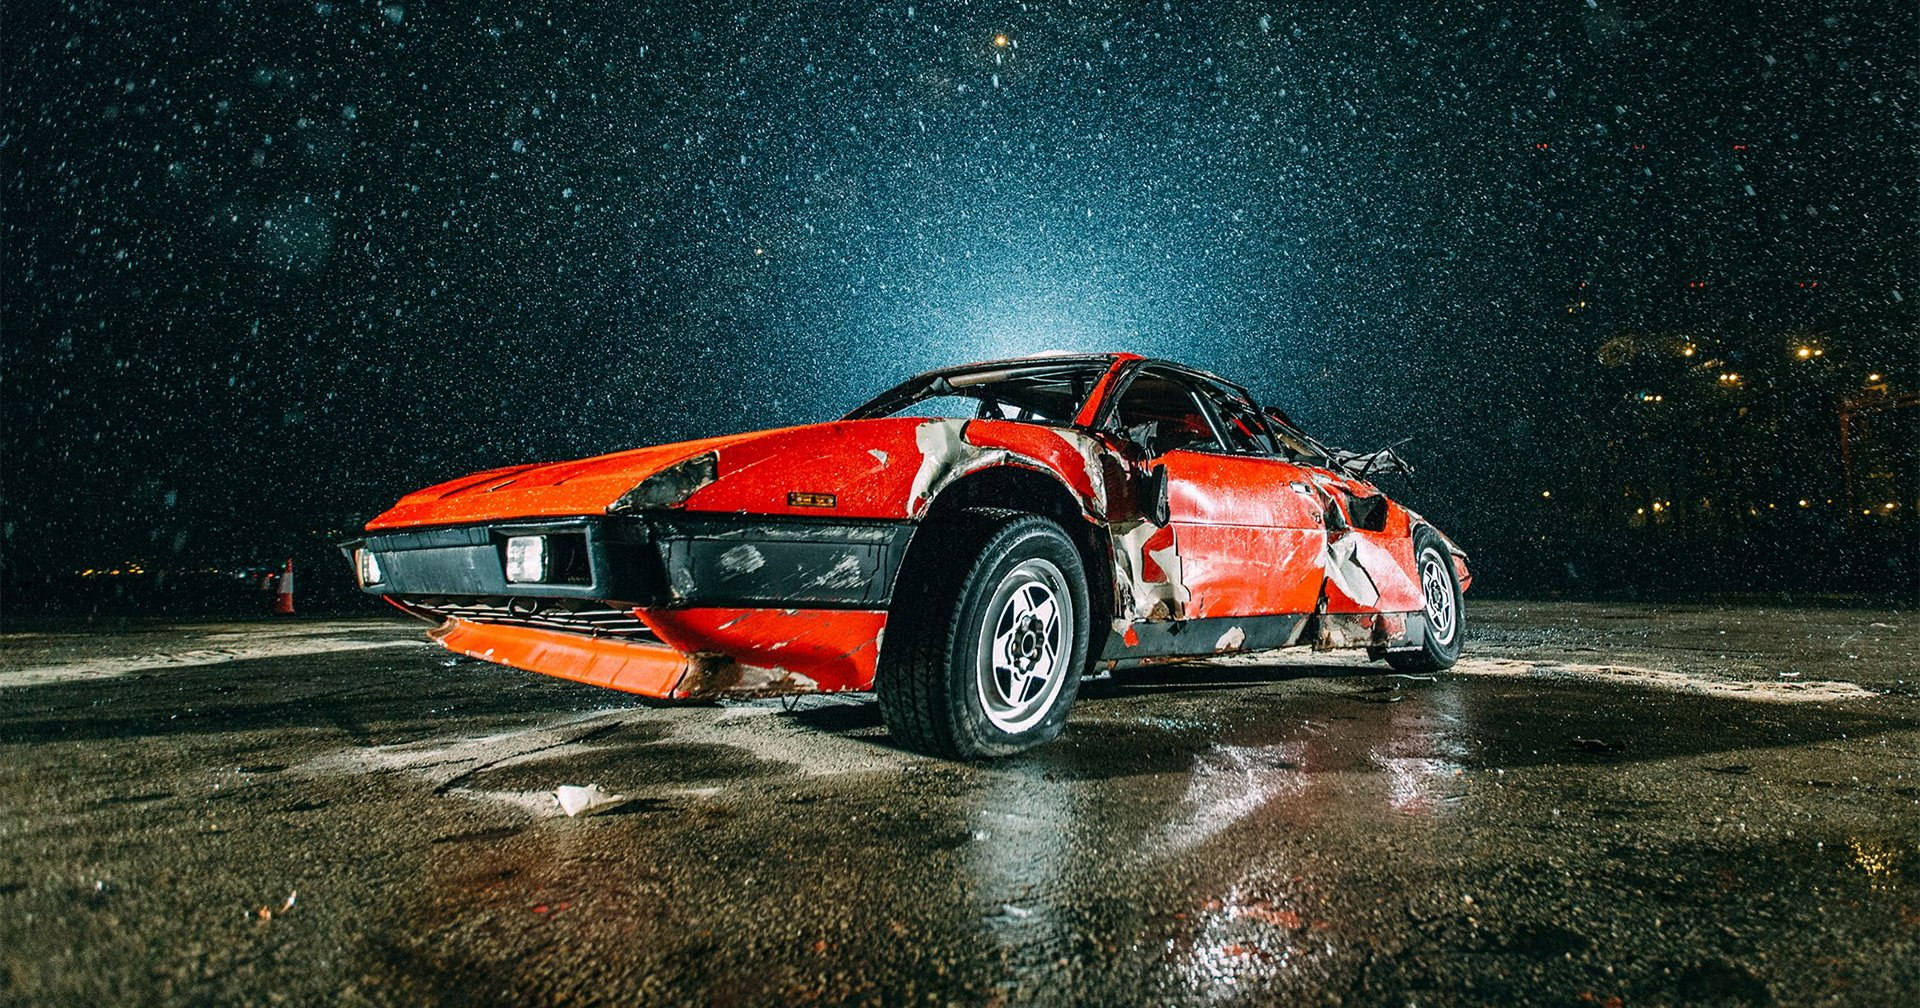 Simon Birch, artist, starving artist, car crash, art installation, car roll, Ferrari, Ferrari Mondial, Italian car, super car, supercar, classic car, retro car, rare car, motoring, automotive, car, cars